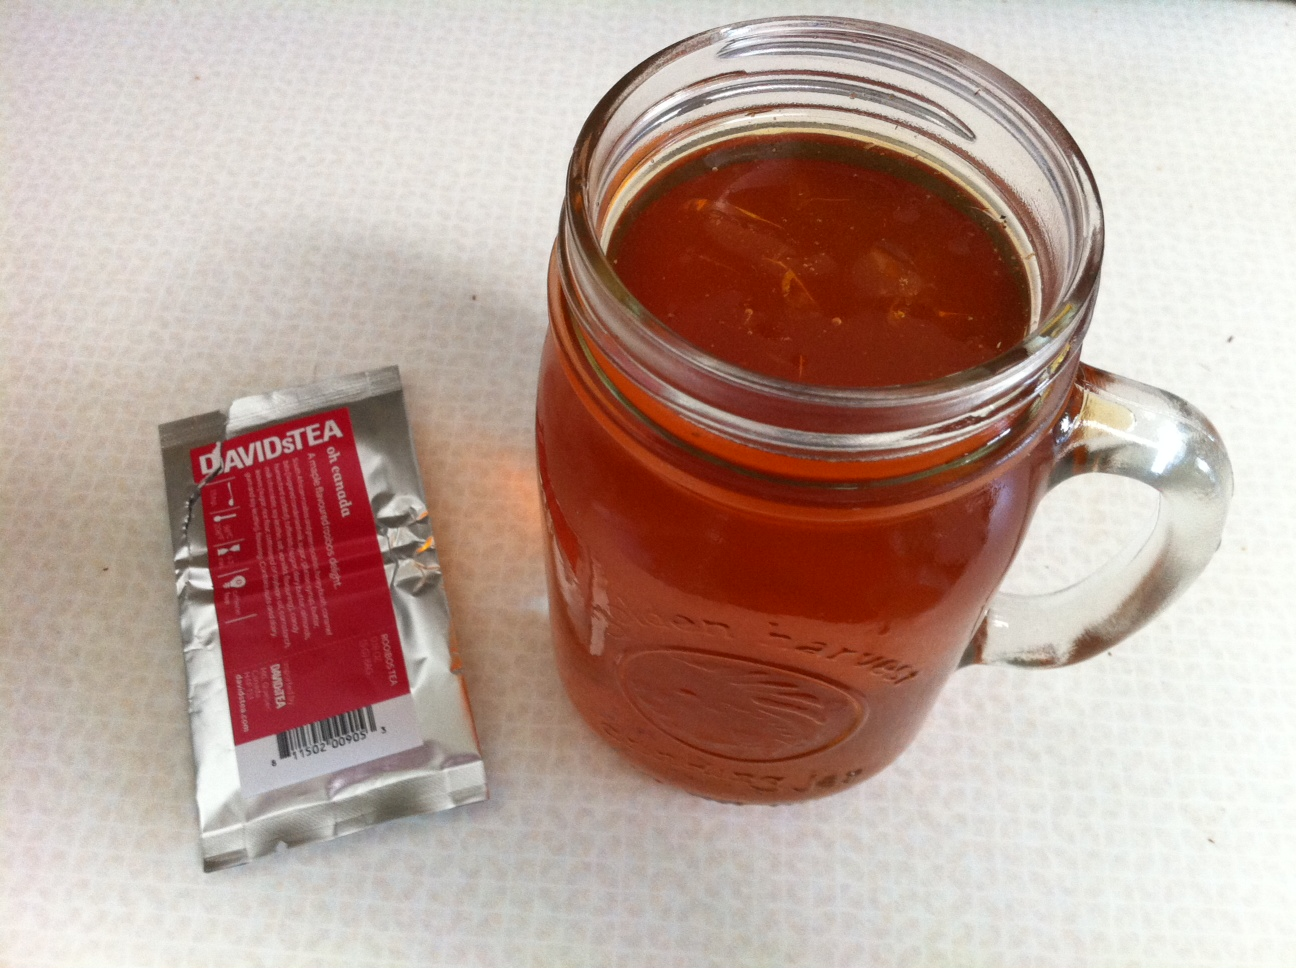 My Favourite Things – Oh Canada Rooibos Iced Tea